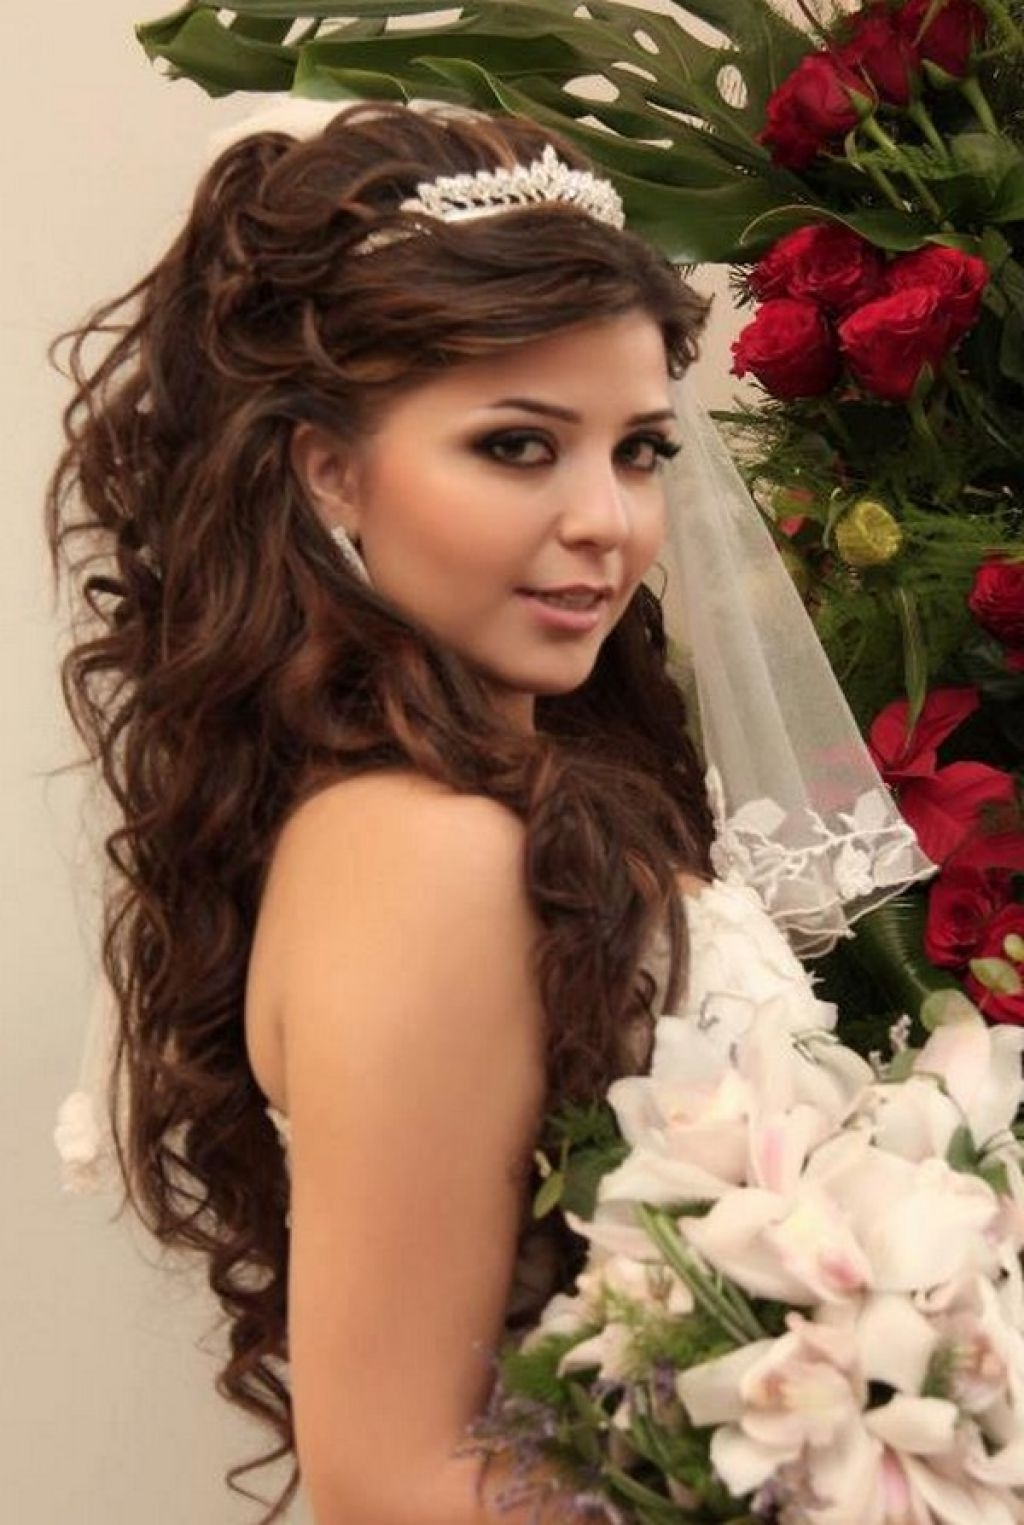 Wedding Hairstyle For Long Curly Dark Hair 50th Anniversary Cakes Inside 2018 Wedding Hairstyles For Long Hair With Tiara (View 15 of 15)